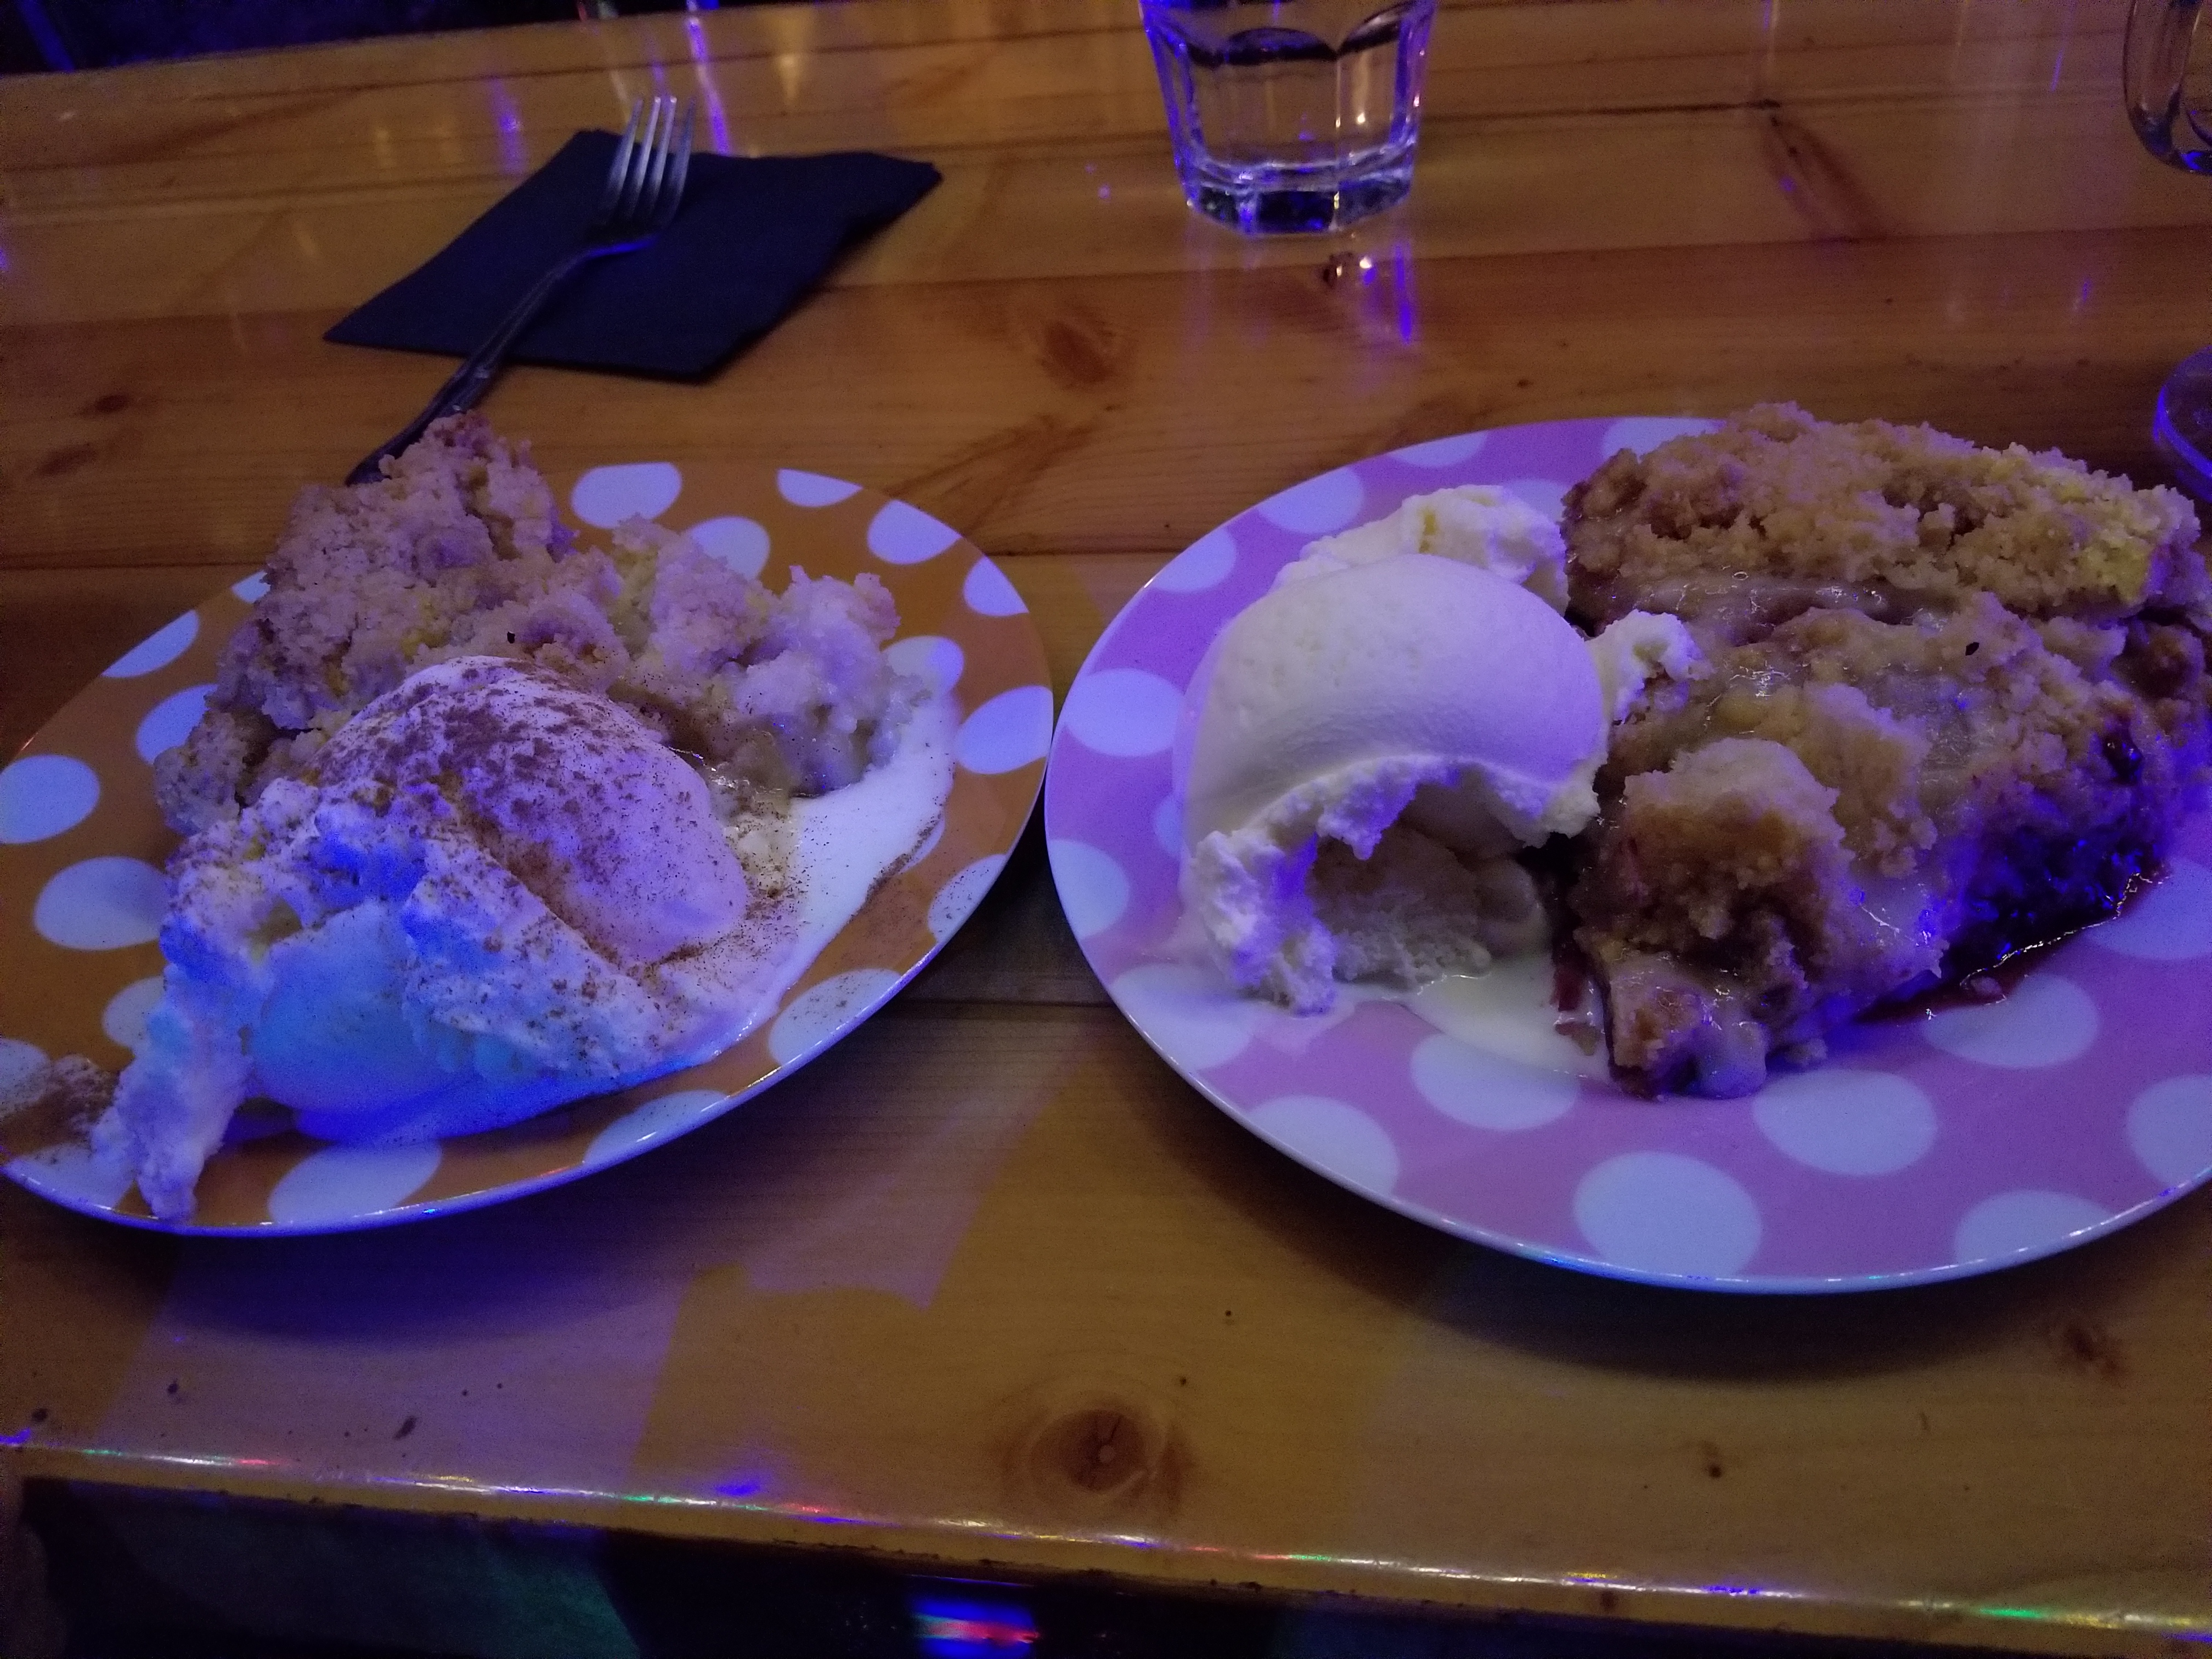 Apple Crumble and Desserted Island pies with a huge helping of vanilla ice cream on the side!